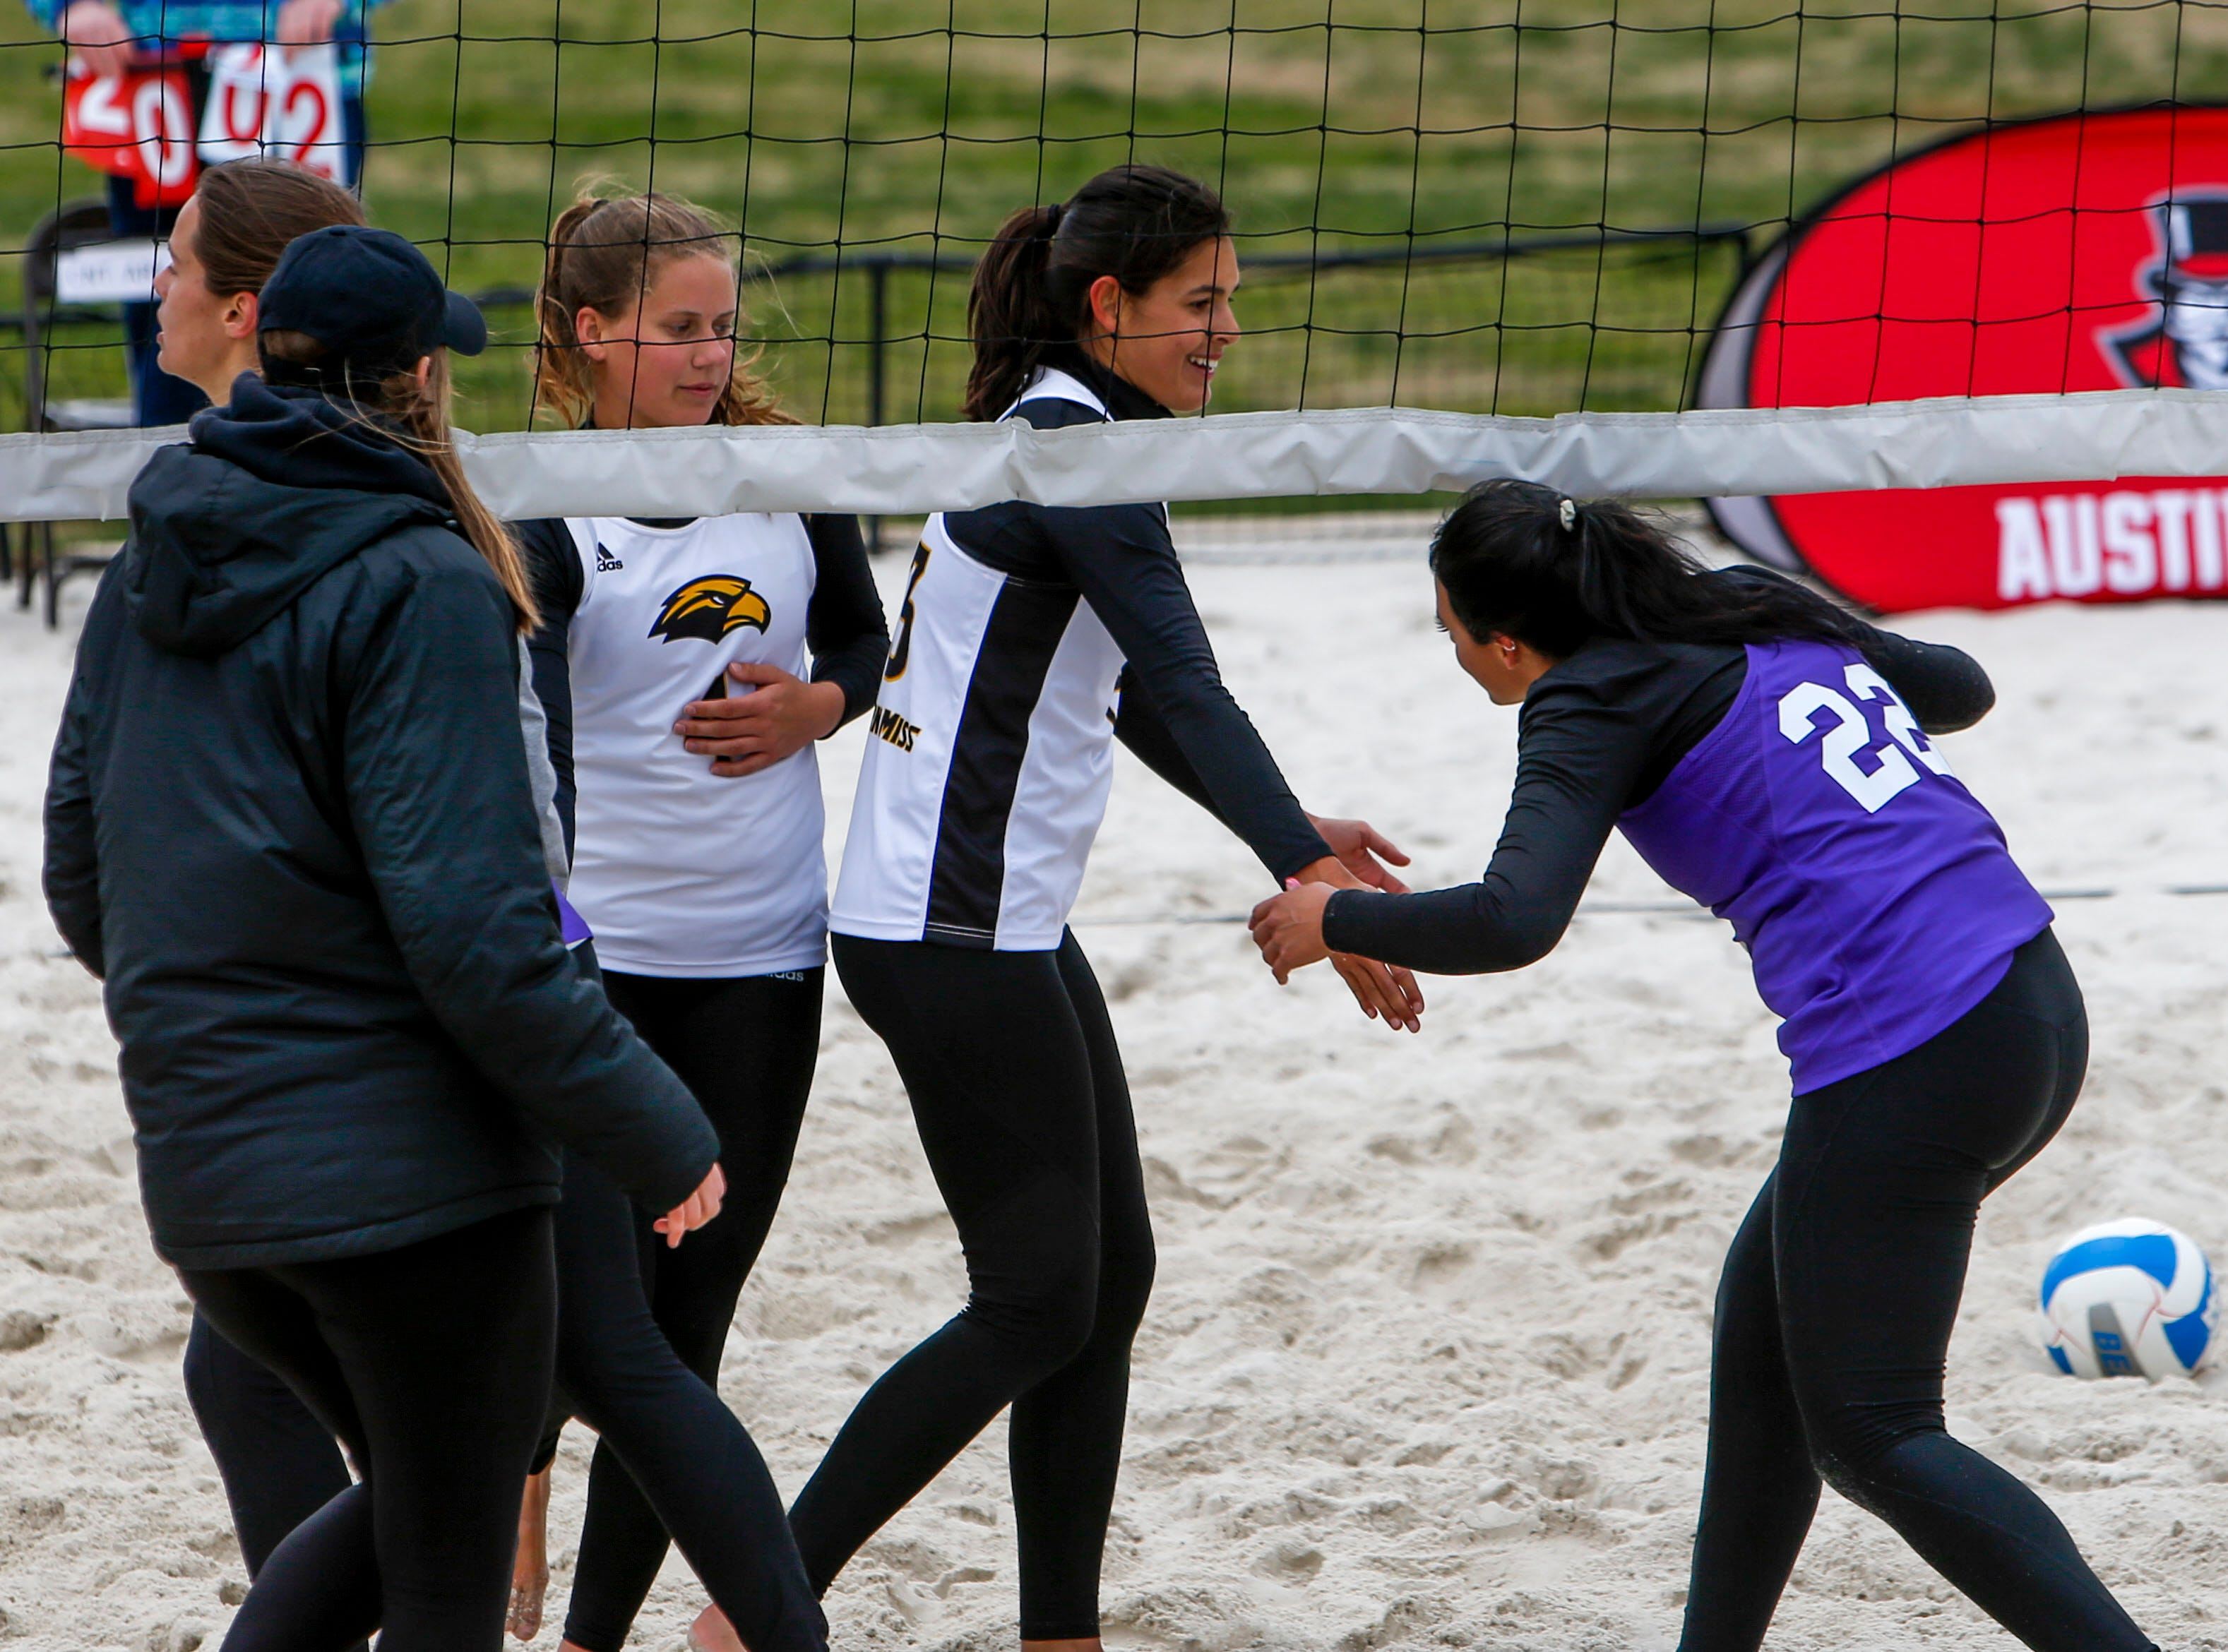 Central Arkansas and Southern Miss players shake hands and talk after a game at Winfield Dunn Center lawn in Clarksville, Tenn., on Friday, March 15, 2019.